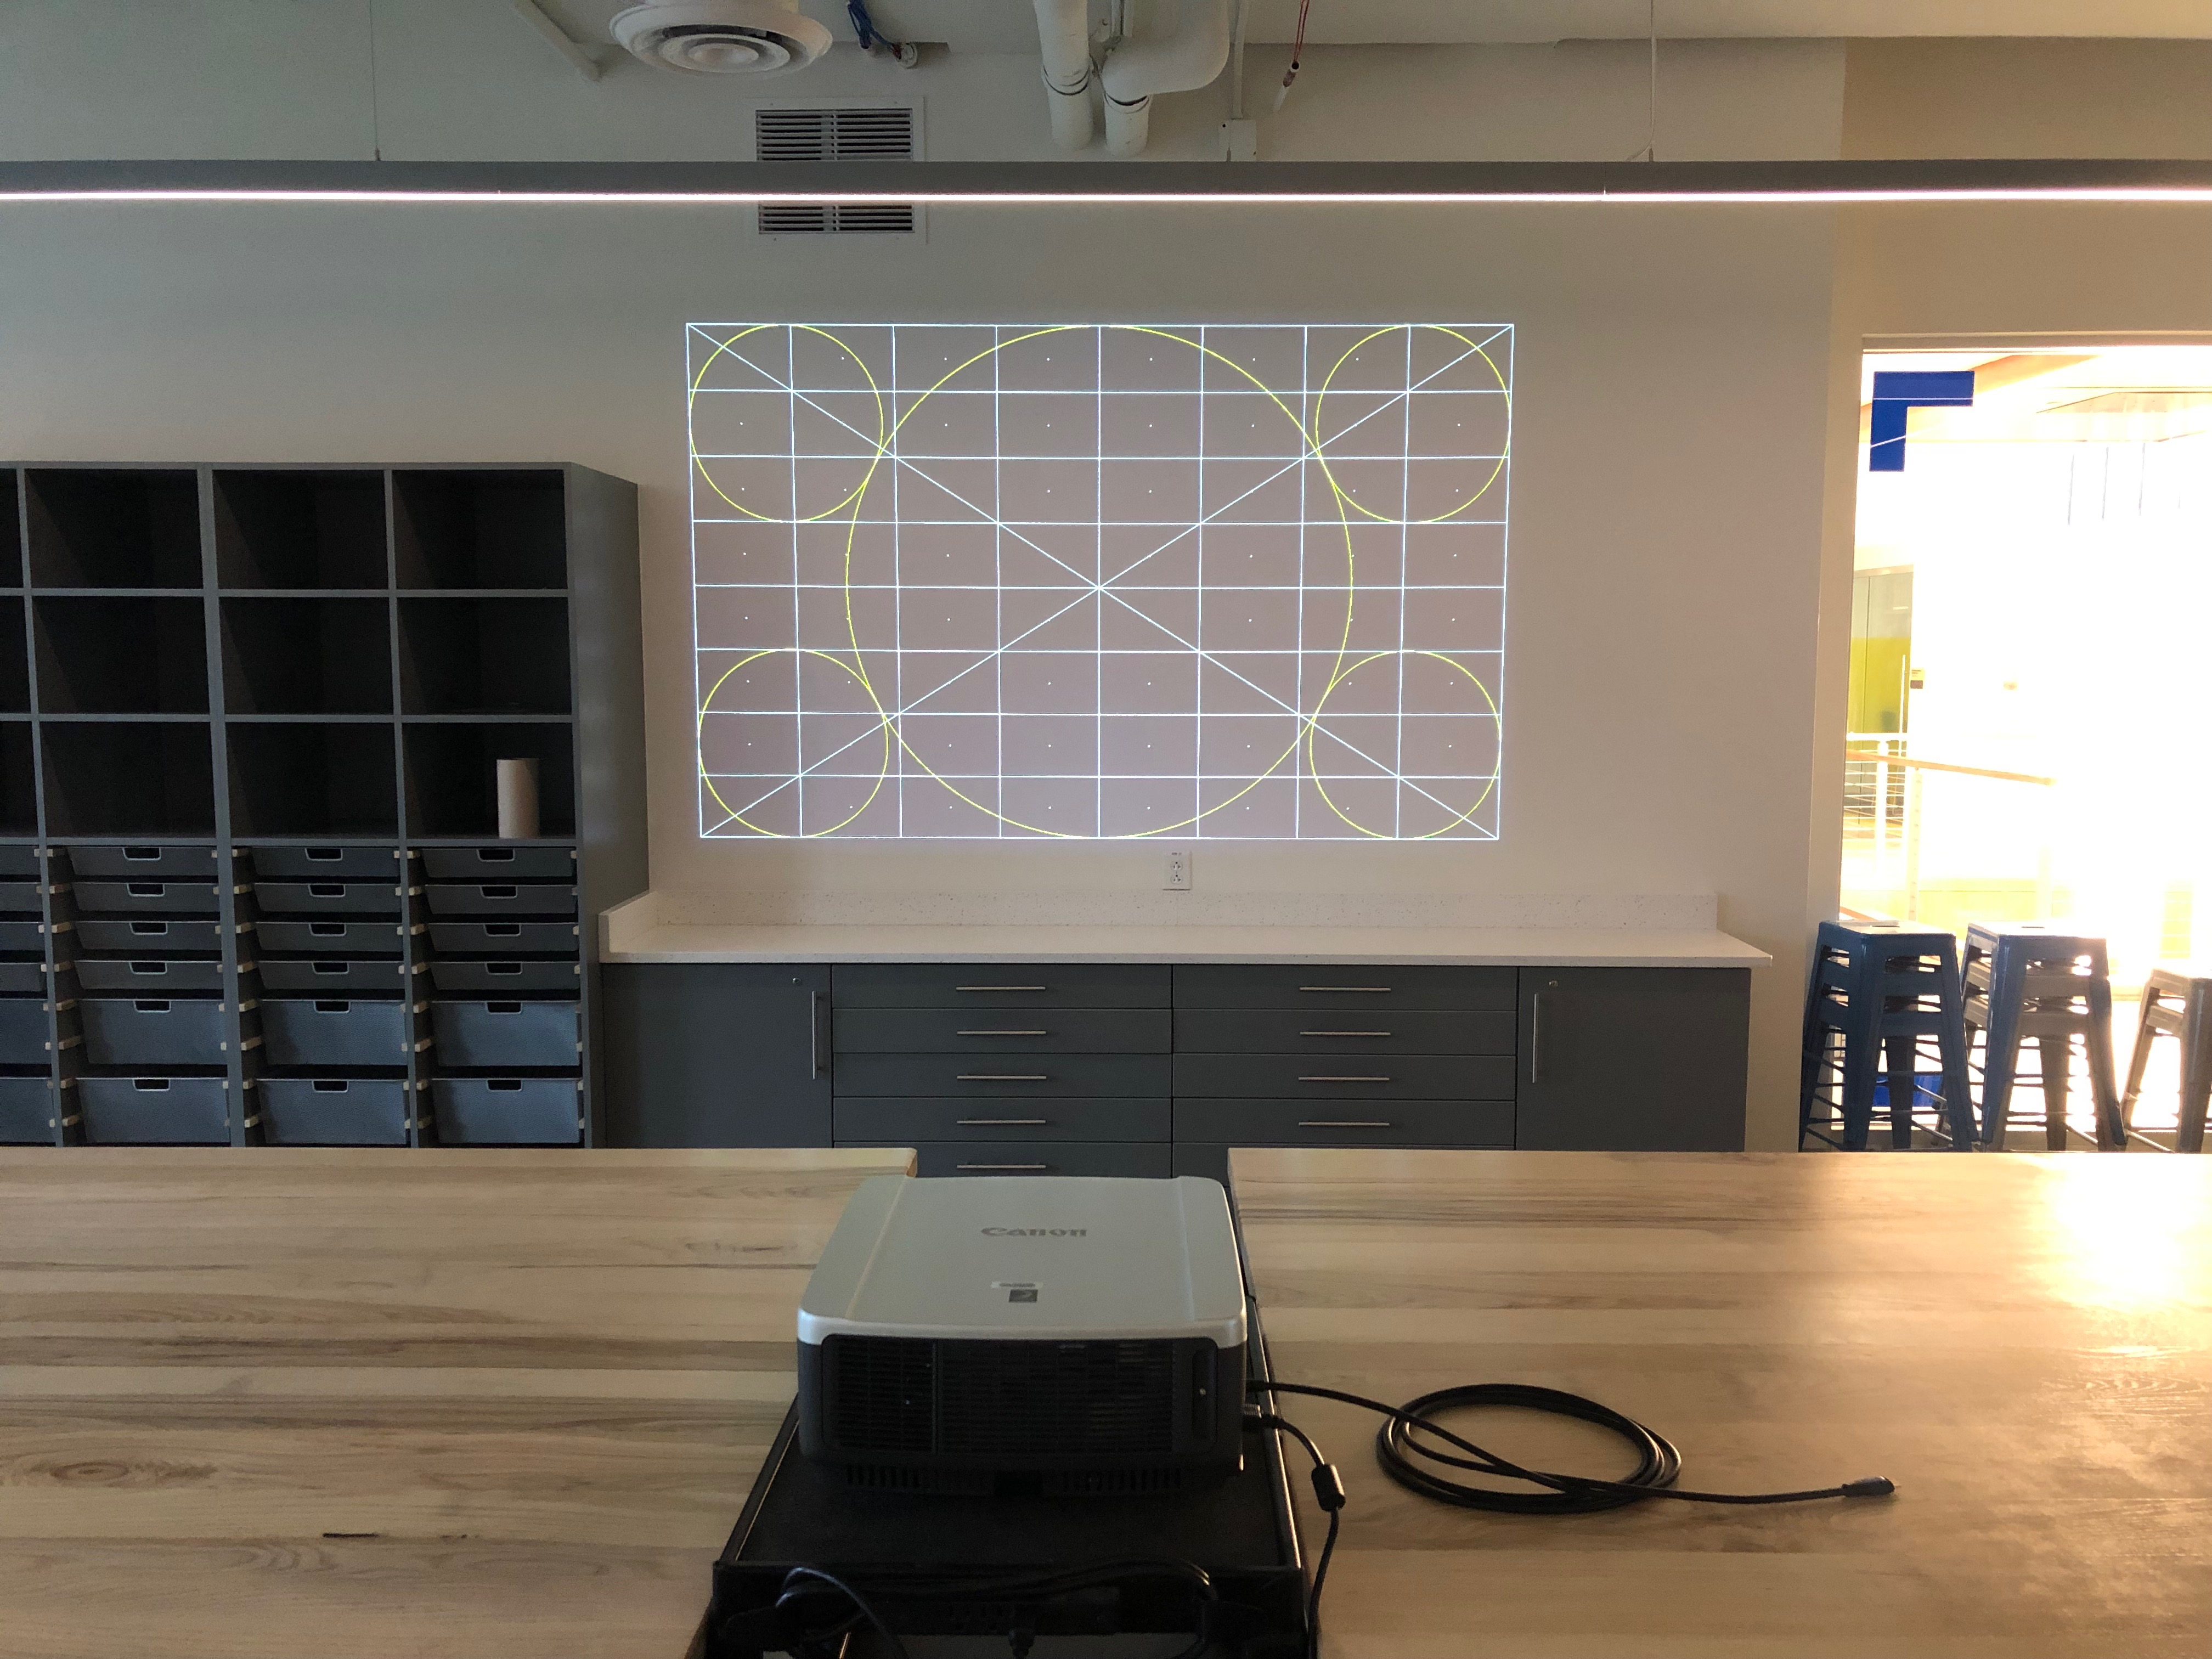 A photo of the projector from the back facing the wall.